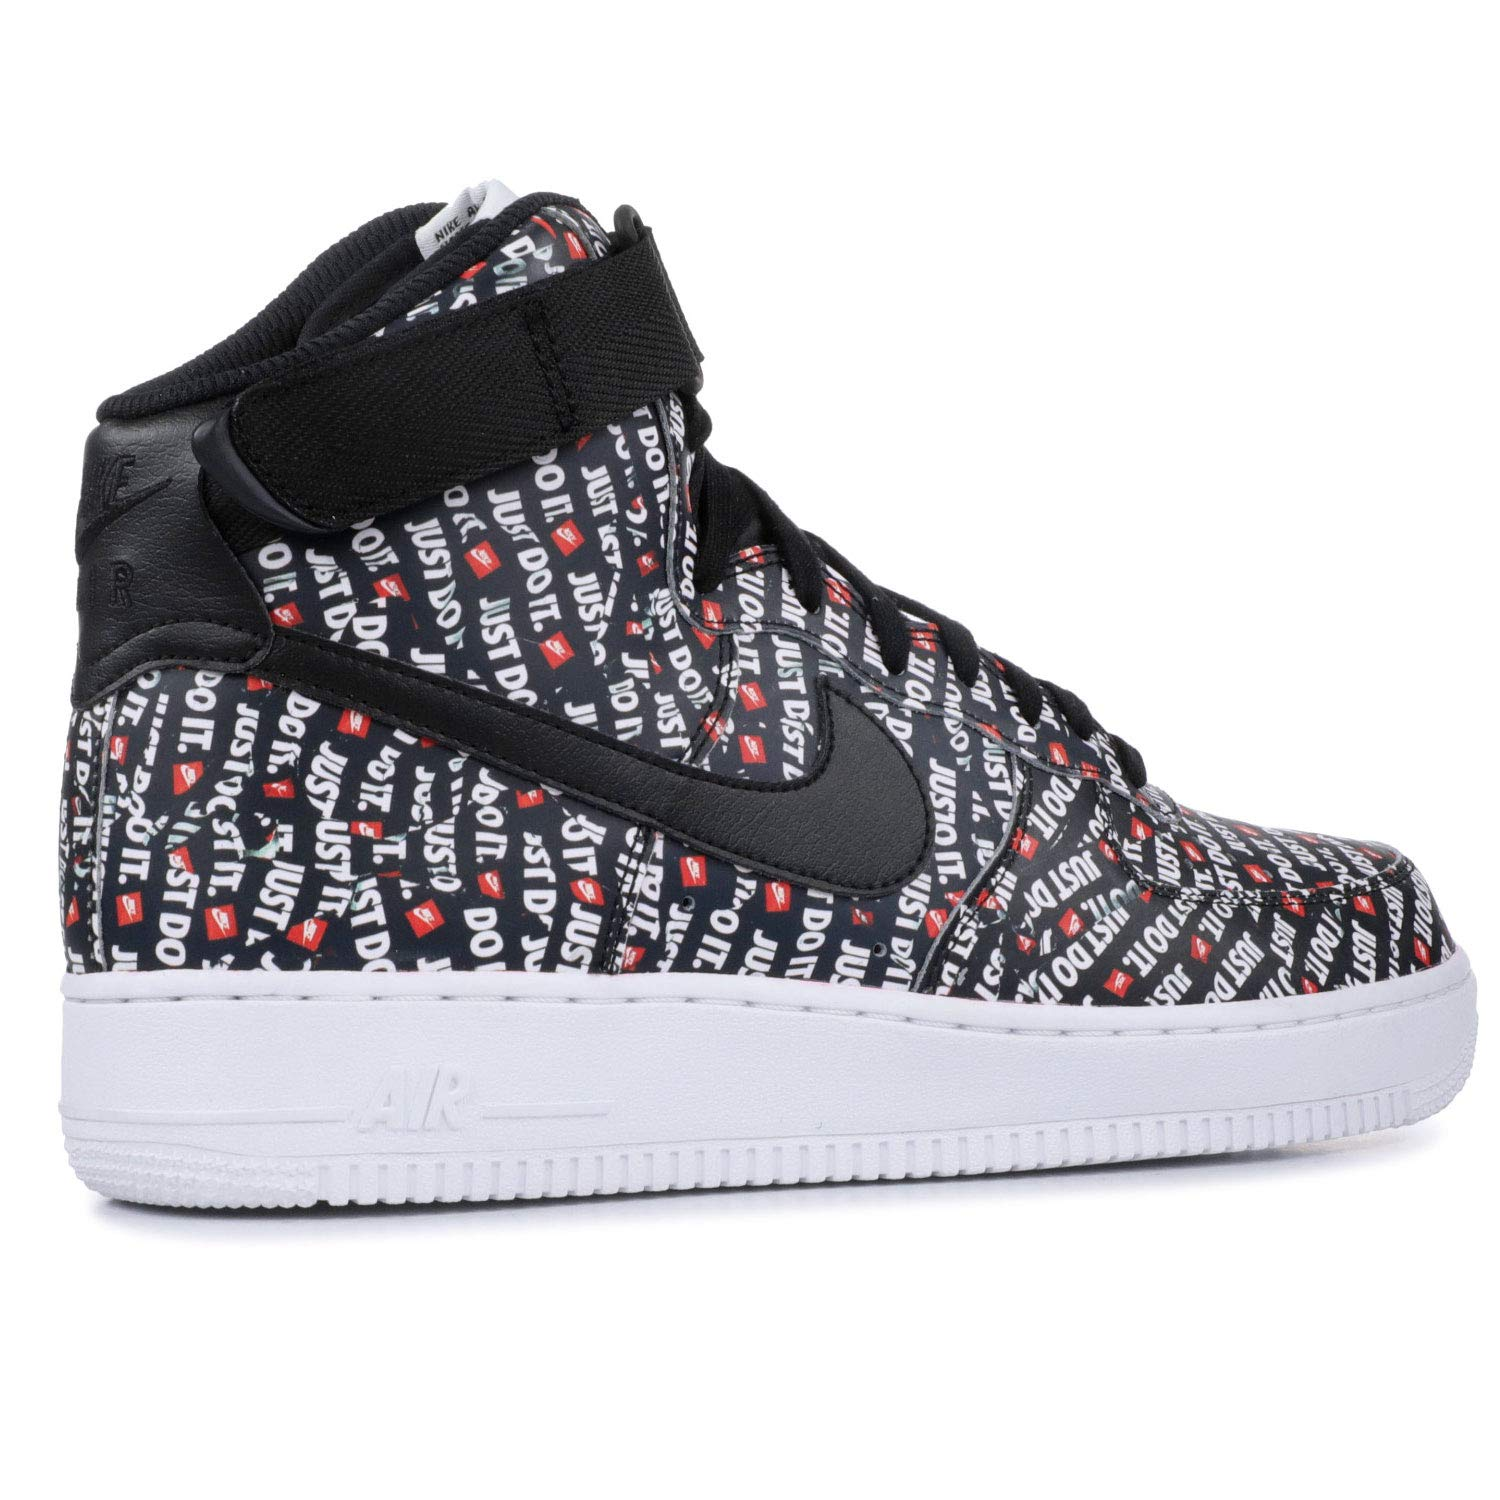 pretty cool new style factory price Nike Air Force 1 High '07 LV8 (Just Do It)